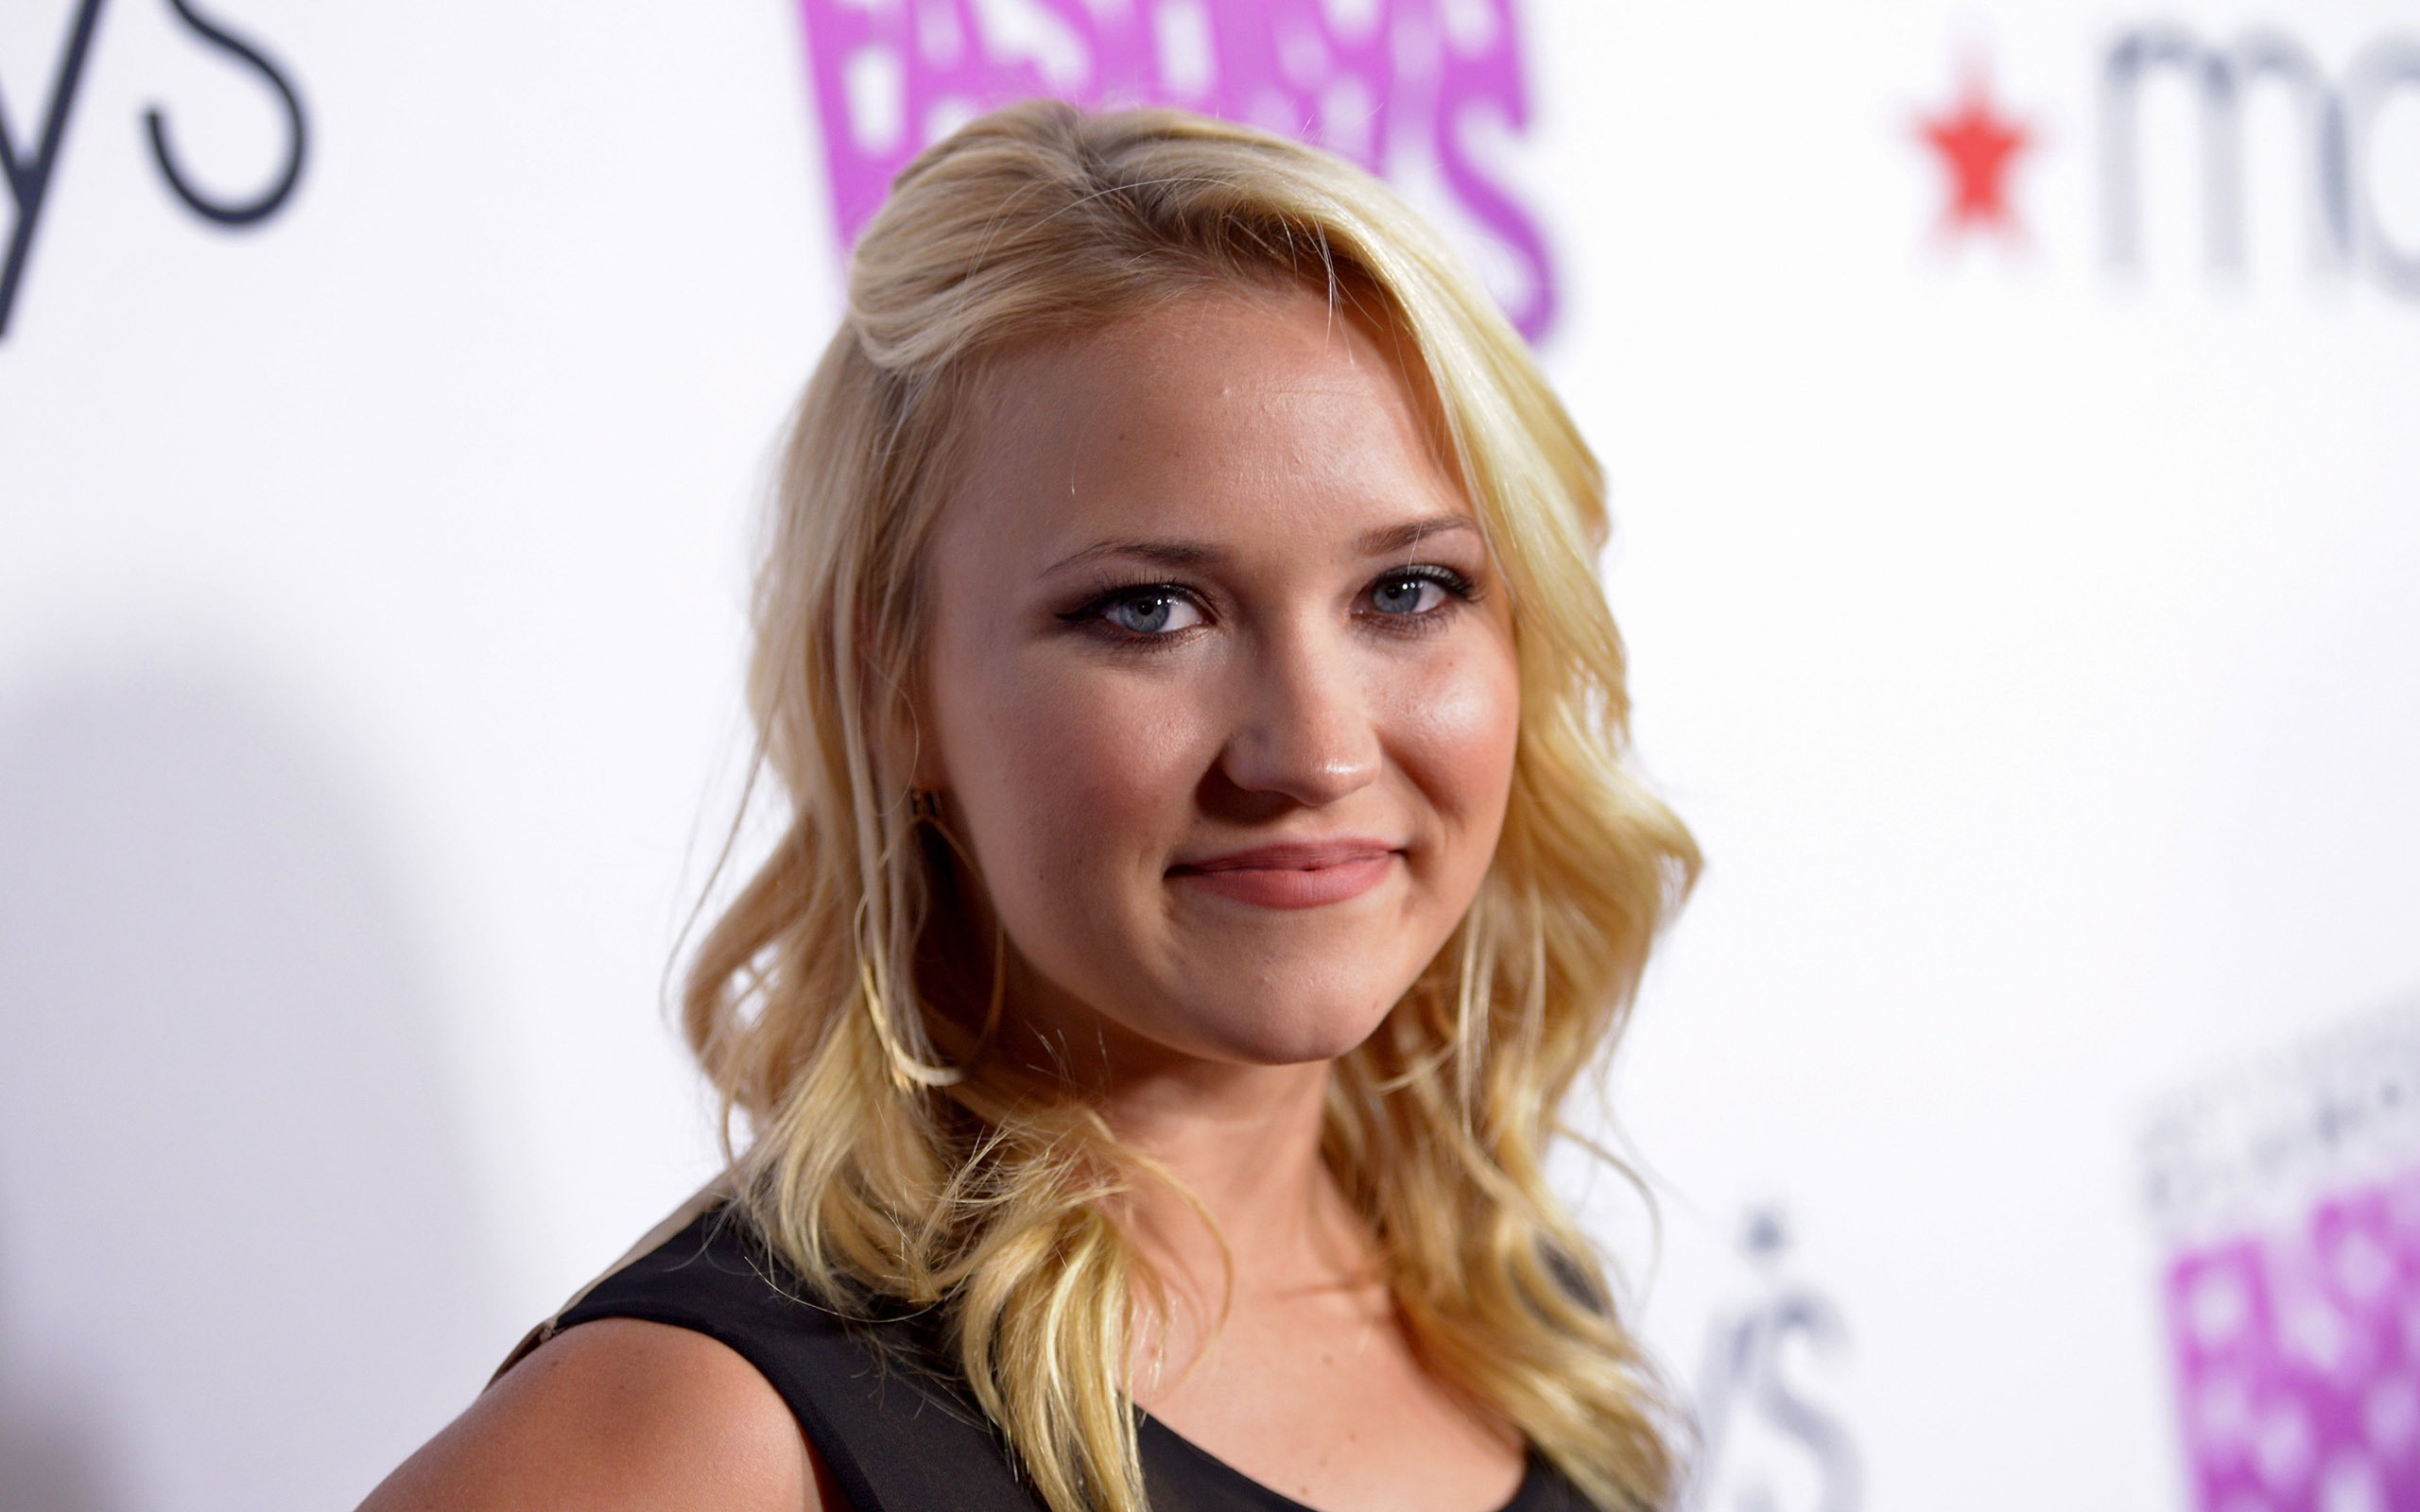 Emily Osment Spaltung foto 4